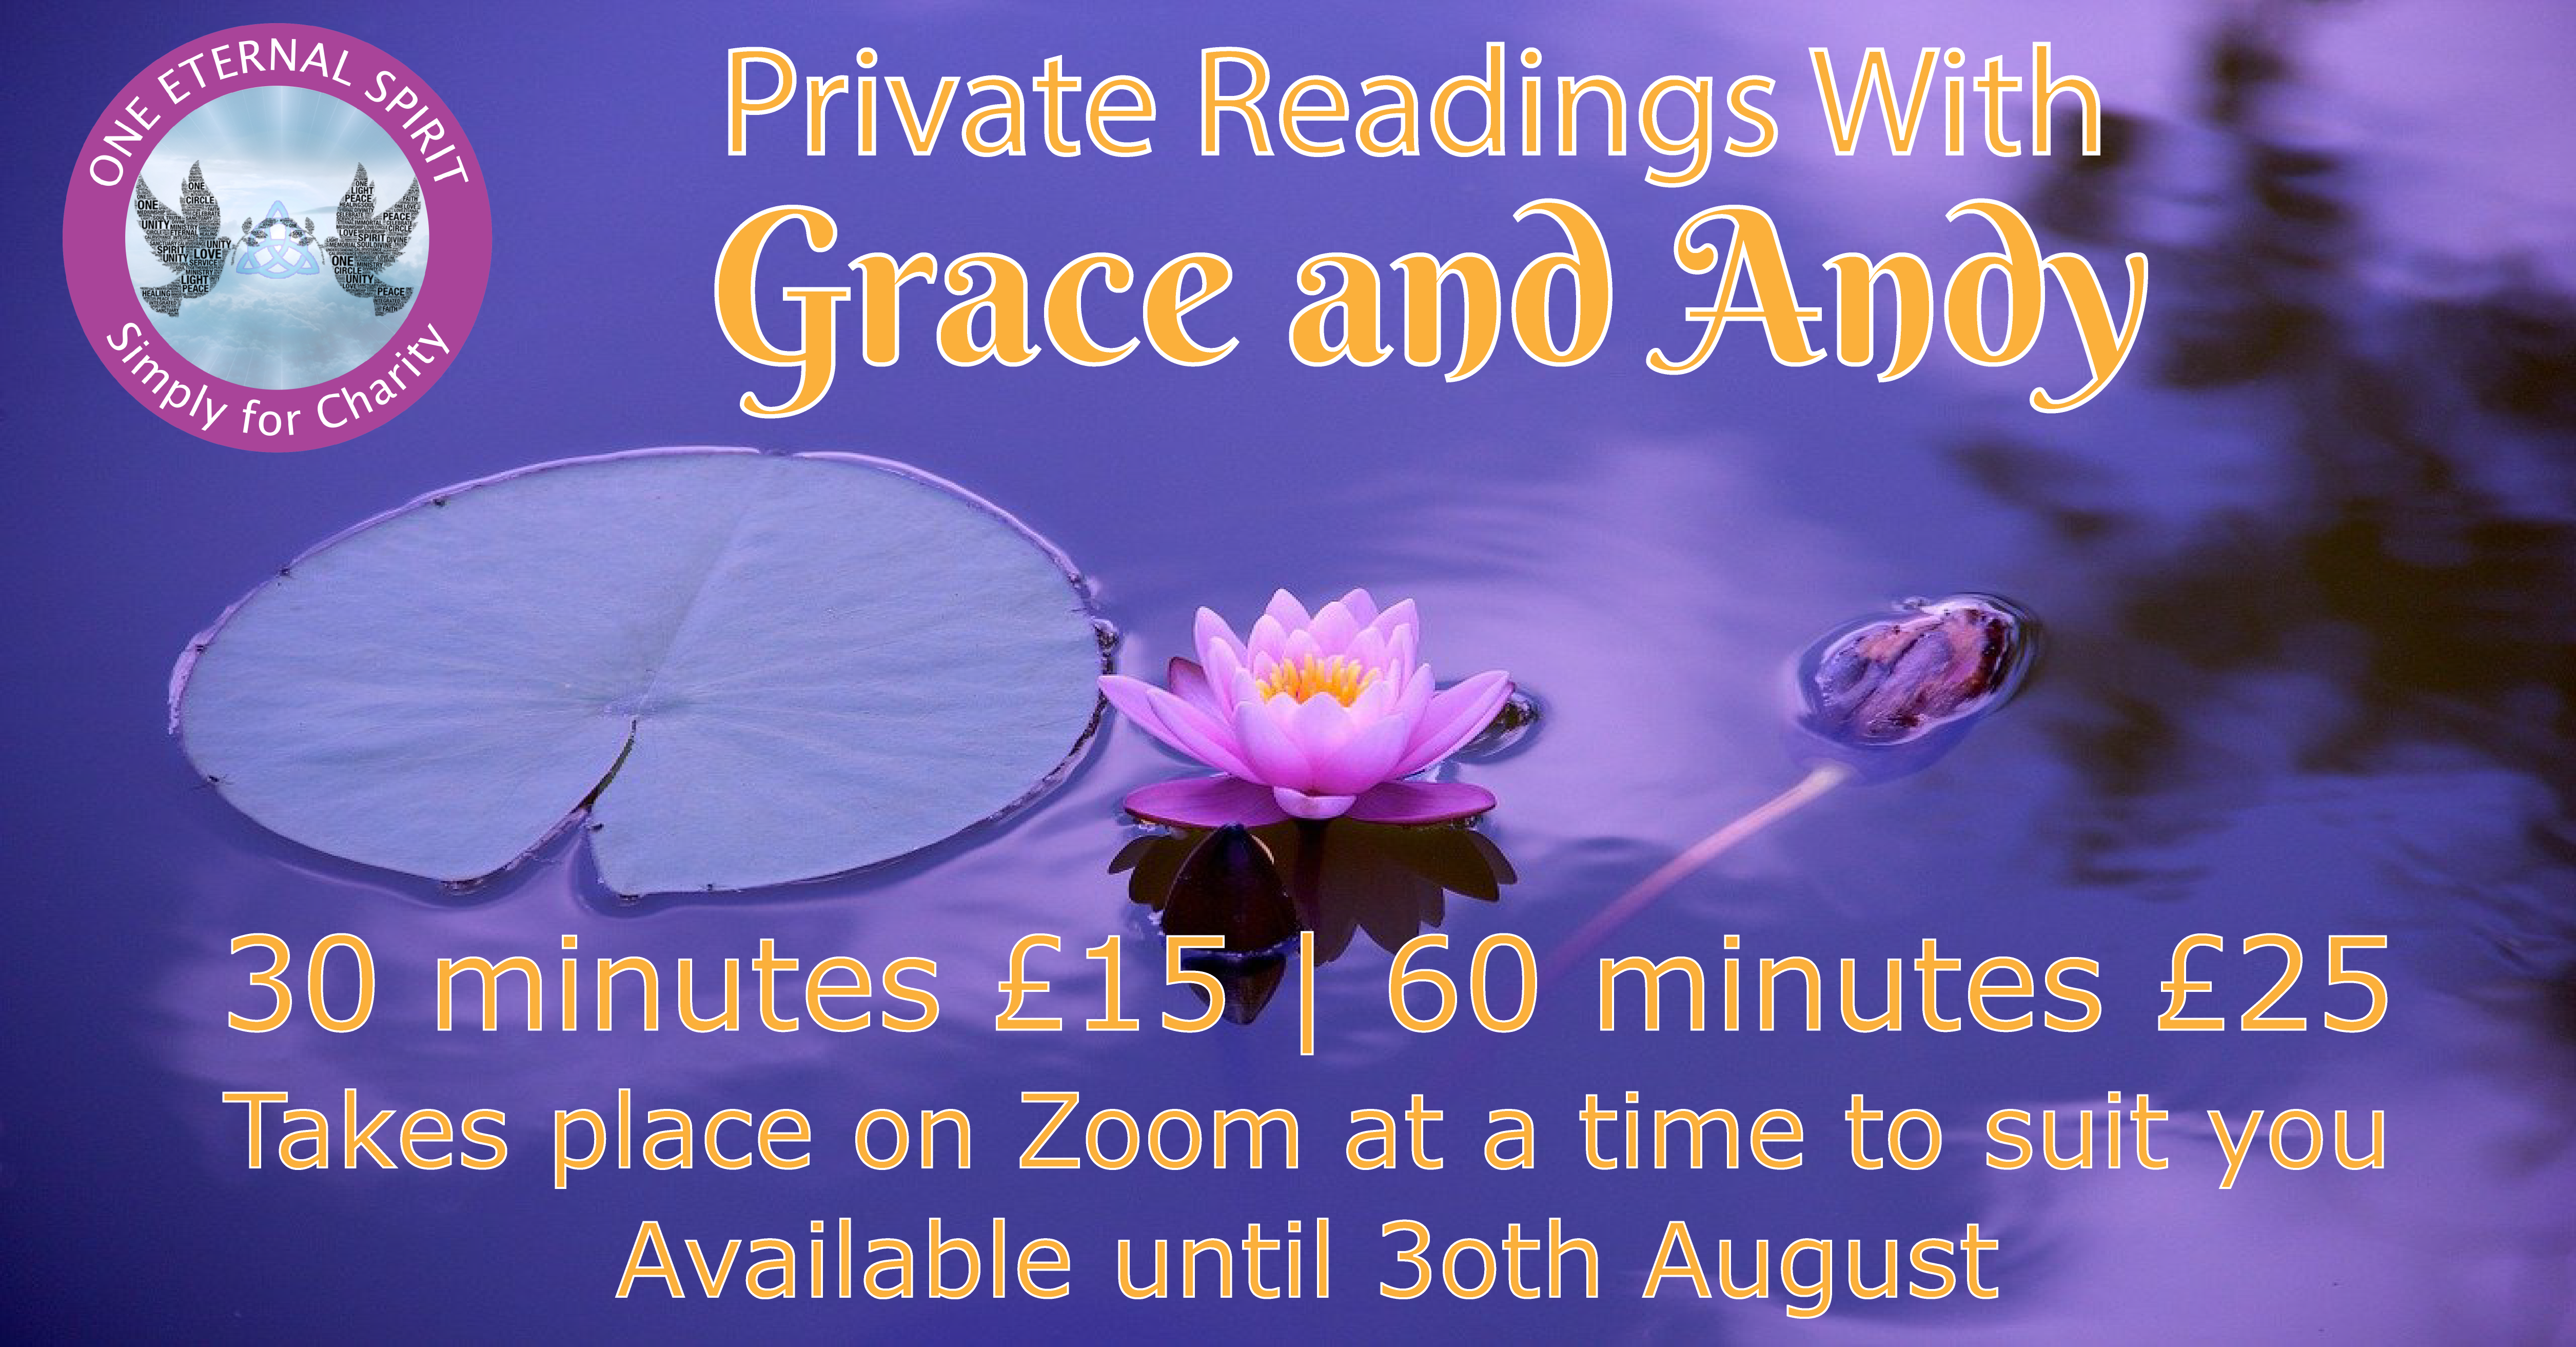 Private Readingwith Grace and Andy Simply For Charity